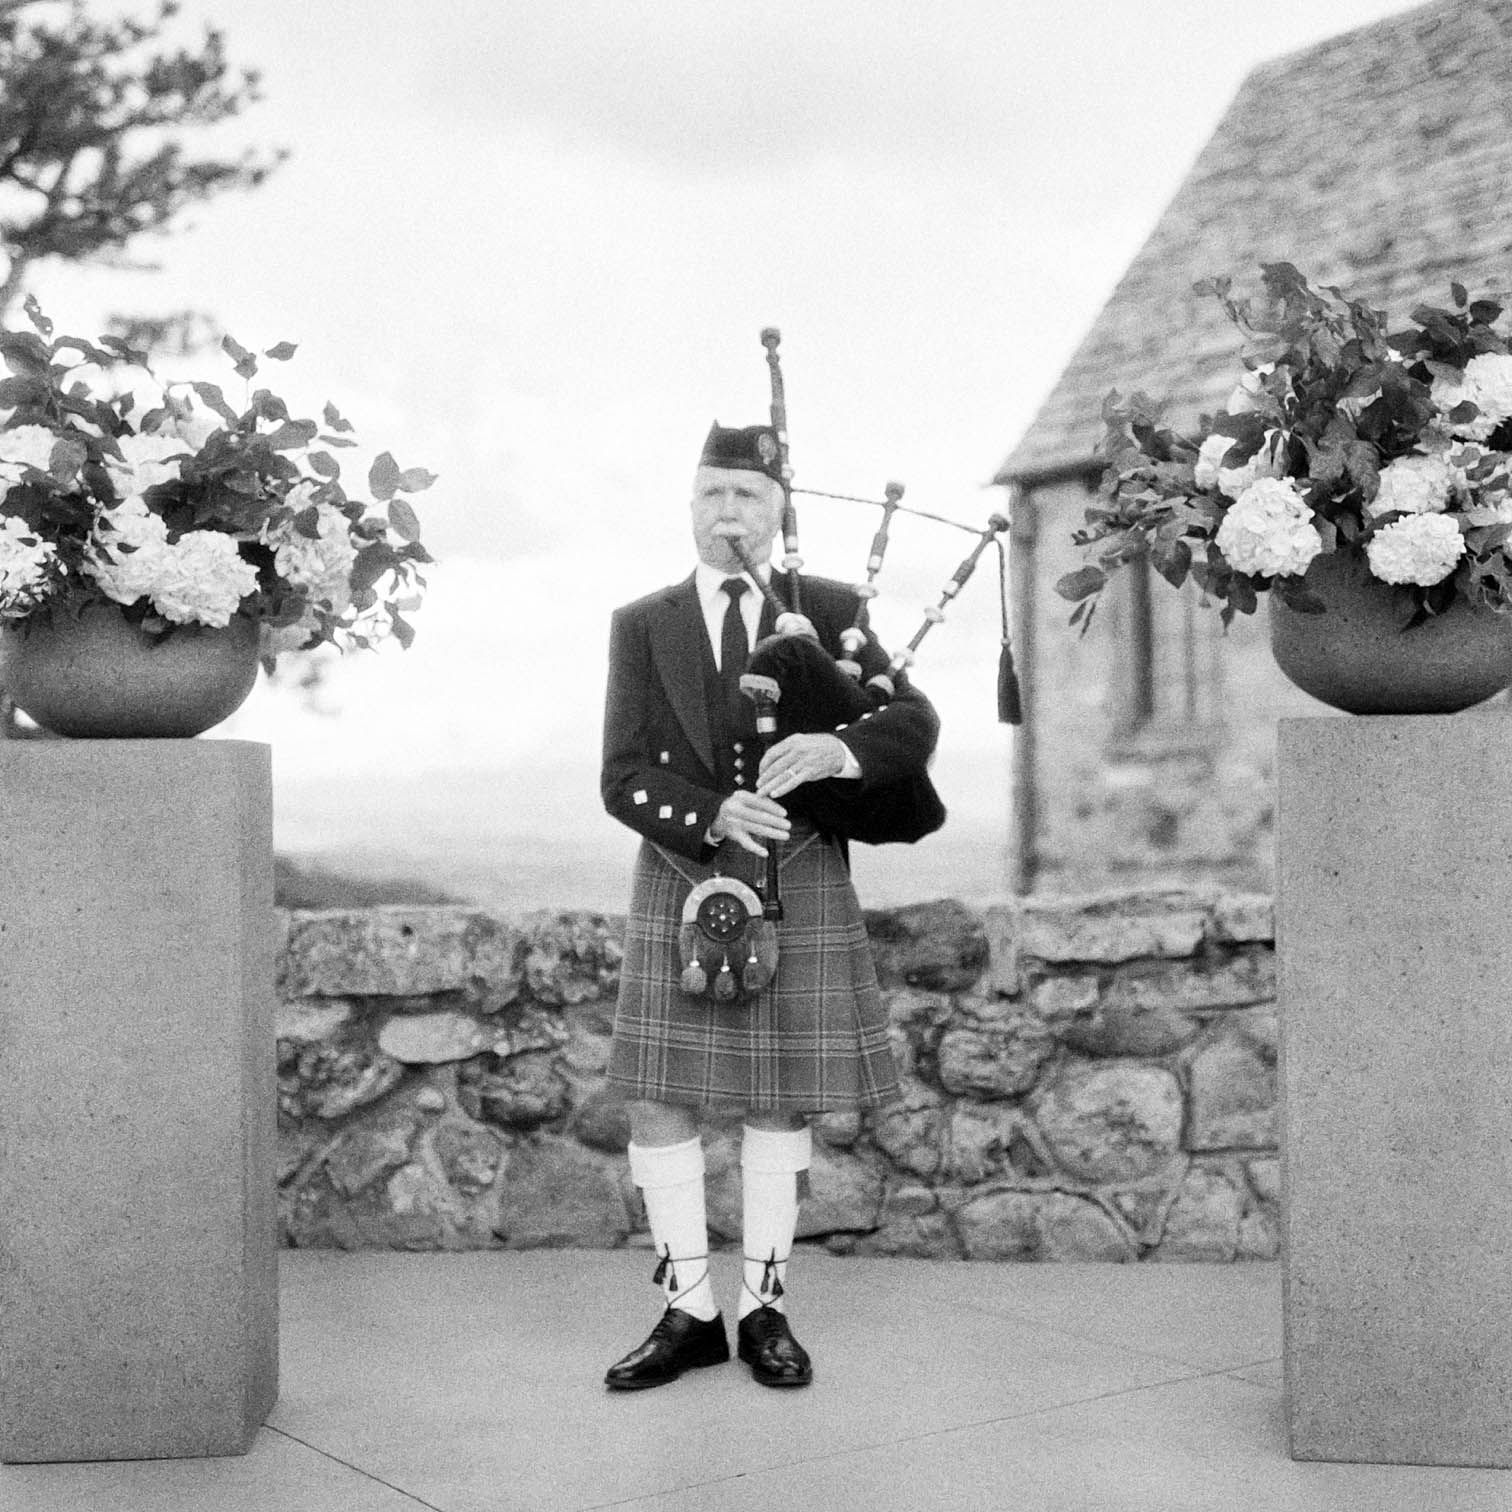 Scottish Wedding, Bagpipe Player, Mountain Weddings, Danielle DeFiore Photographer, Bride and Groom Portraits, Colorado Wedding Photographers, Castle Wedding, Classic Black tie Wedding, Film Photographer, Colorado Weddings, Black and White Photography